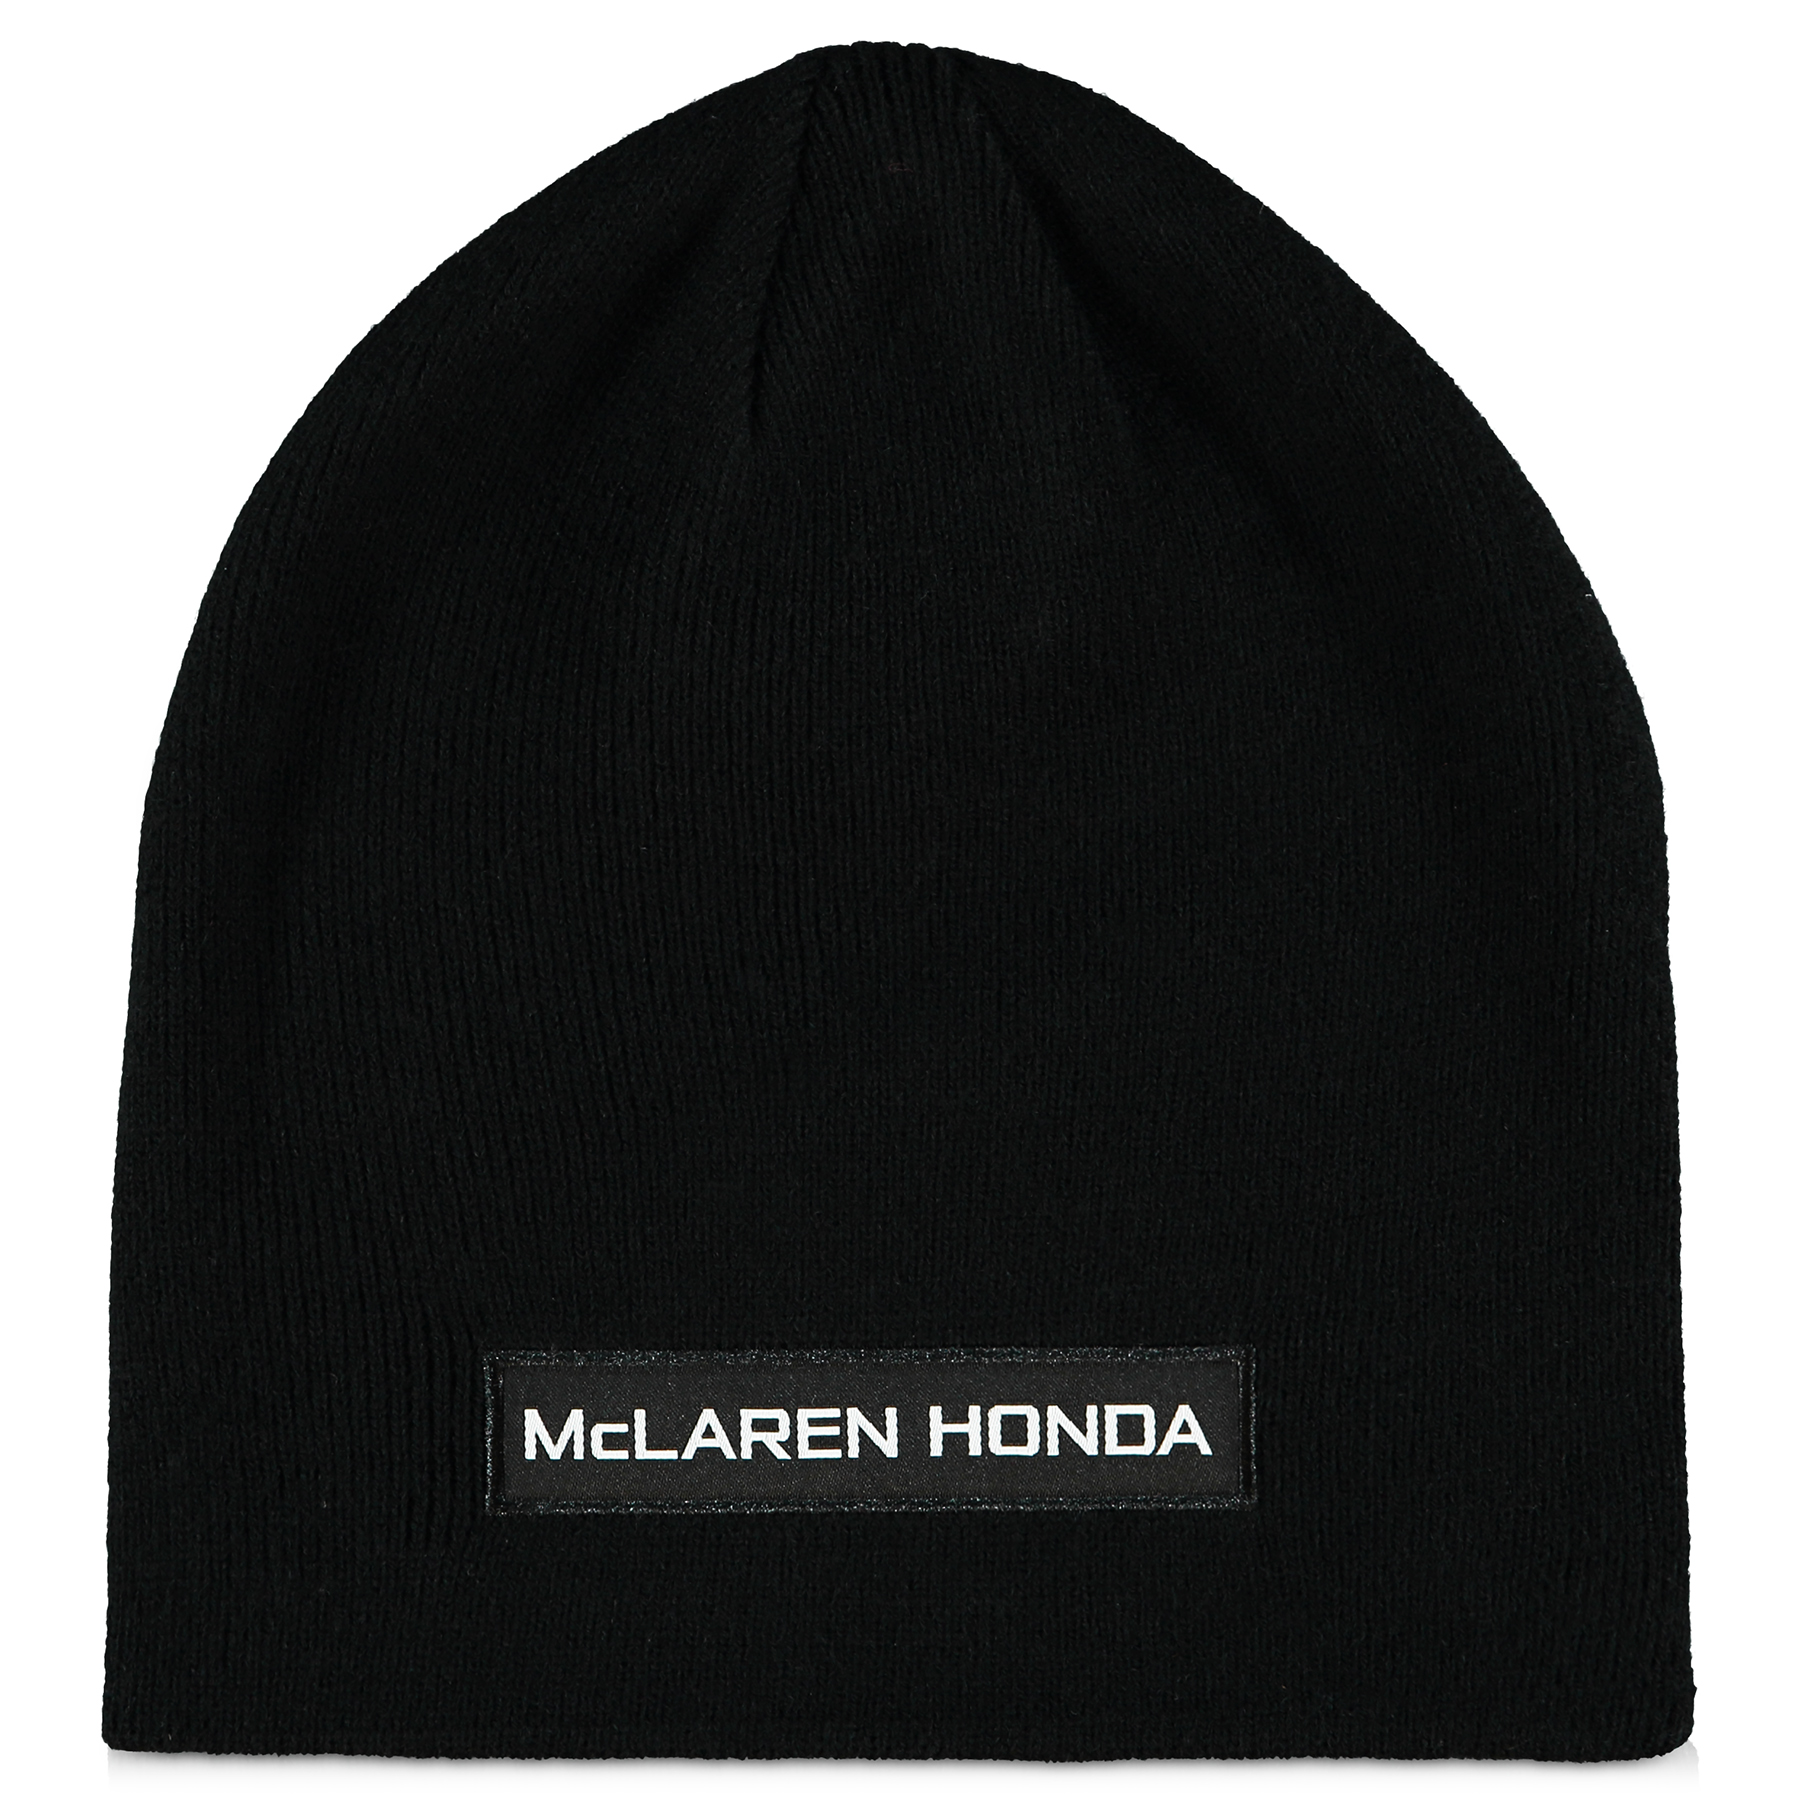 Caps|Accessories|Gifts for Men|Formula 1 McLaren Honda Official Team Beanie Black